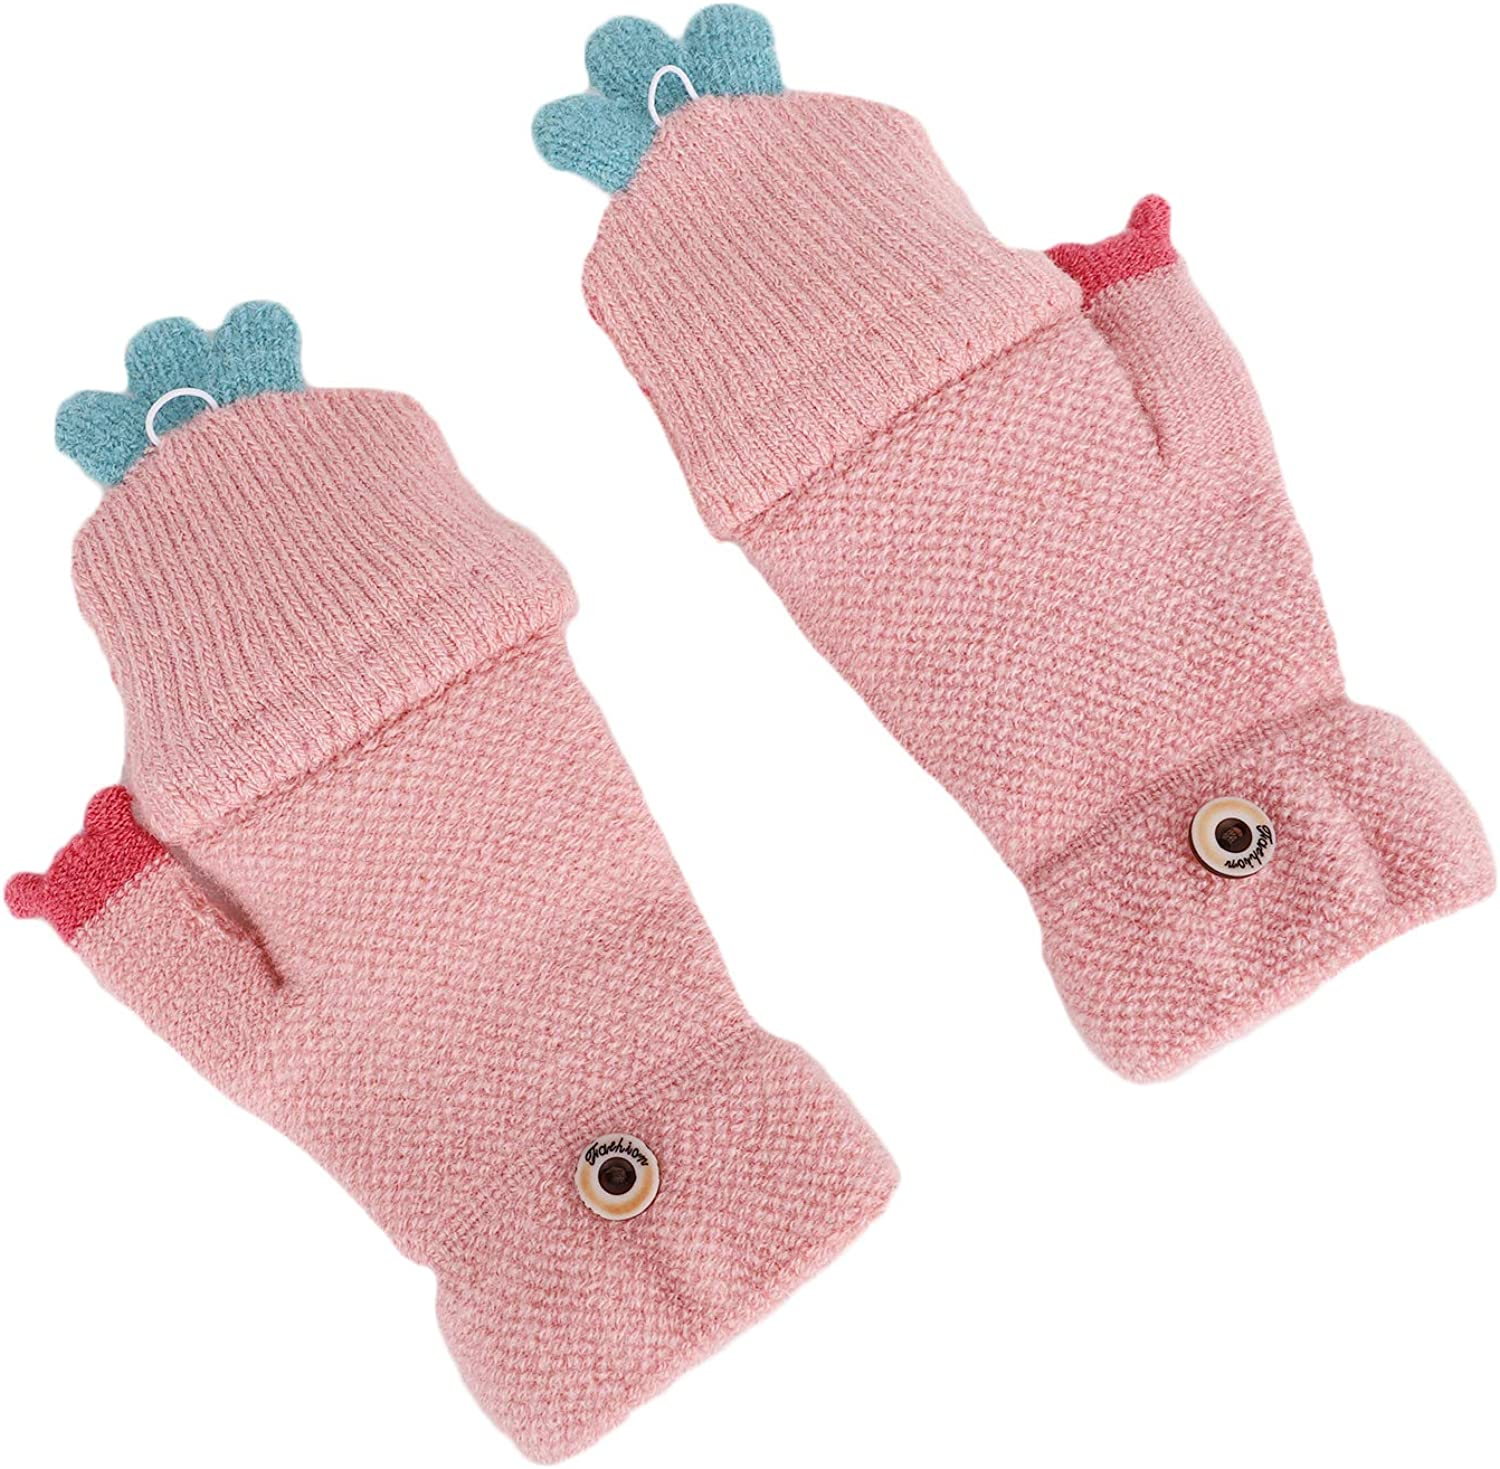 Kids Cute Carrot Knitting Fingerless Gloves Warm Flip Top Mittens Christmas Gift